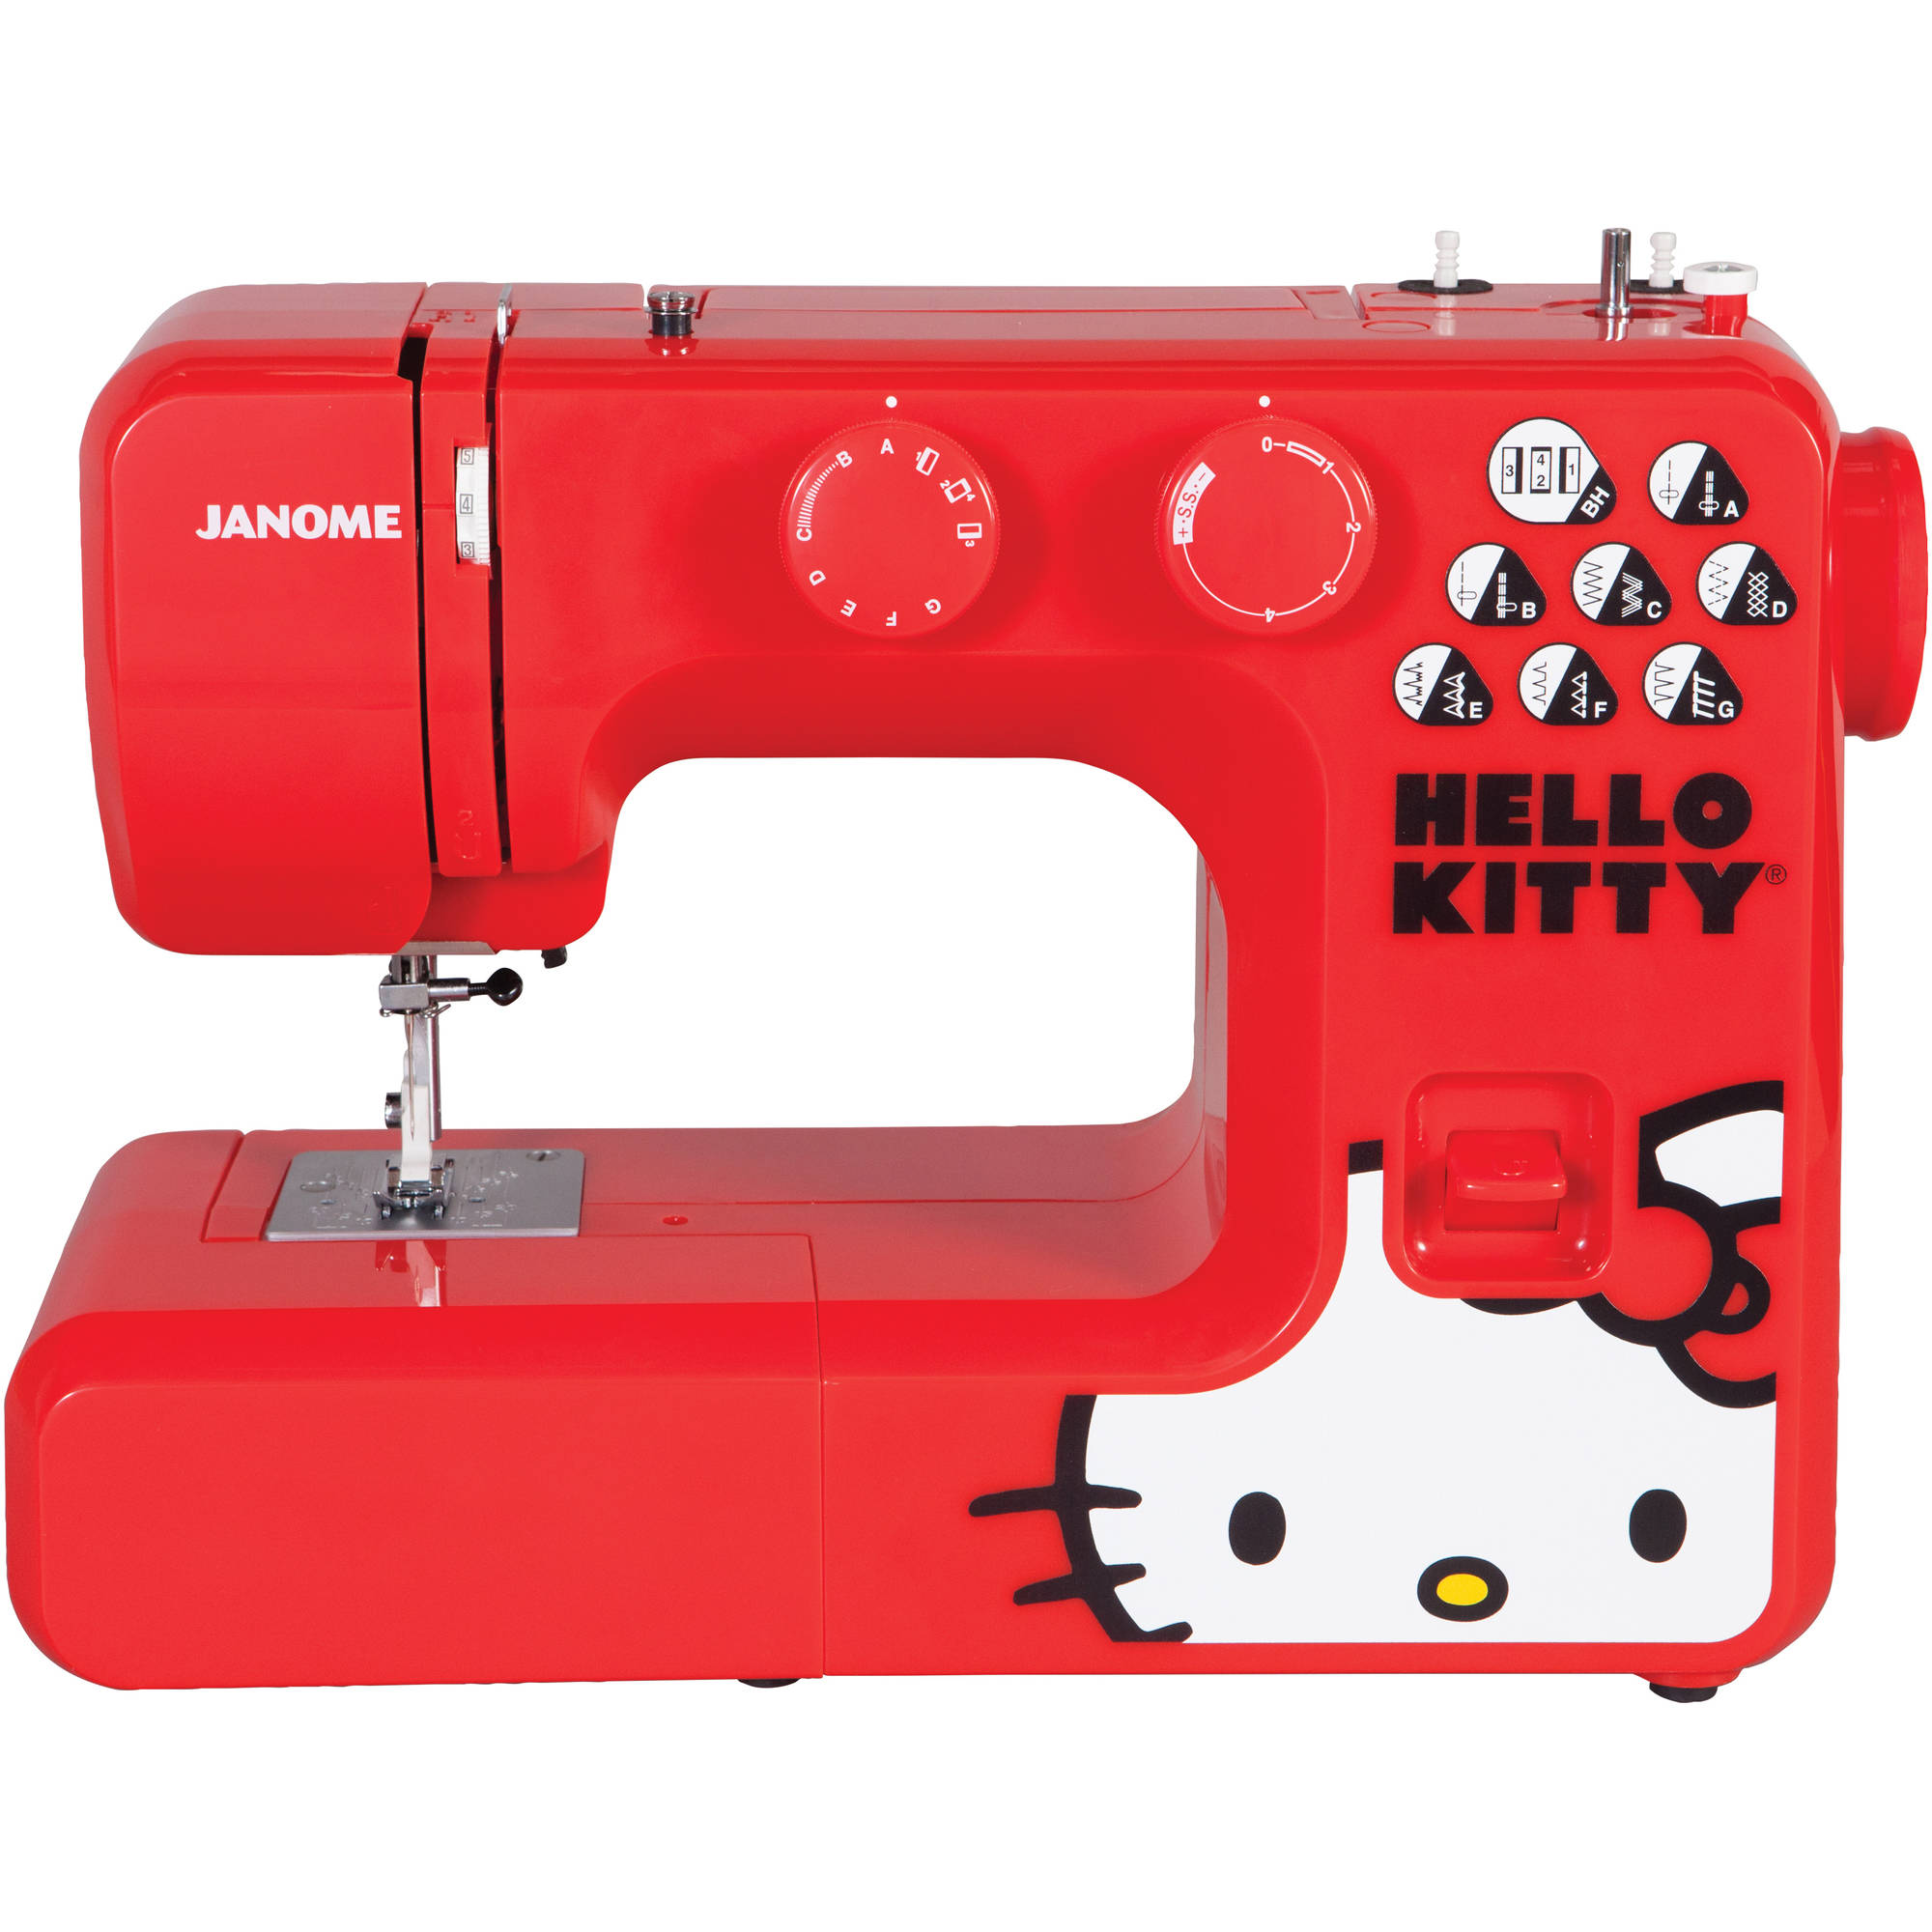 Janome 13512 15-Stitch Hello Kitty Easy-to-Use Sewing Machine